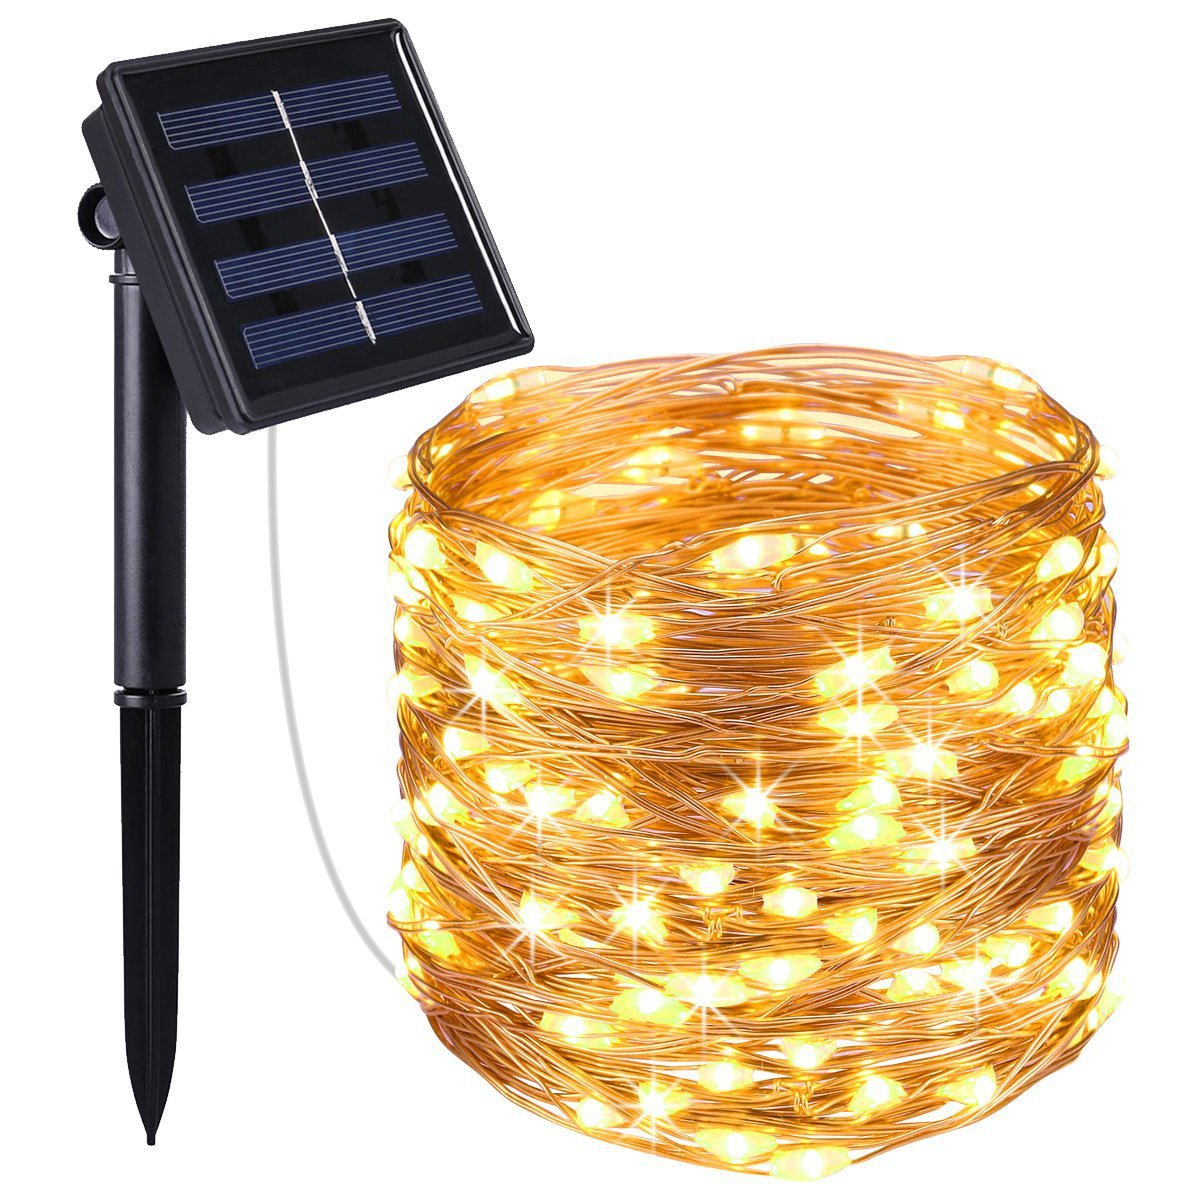 LED Fairy Light 5/10/20/30/40/50M Solar String Light Chain Garland Copper Wire Backyard Outdoor Christmas Halloween Decoration